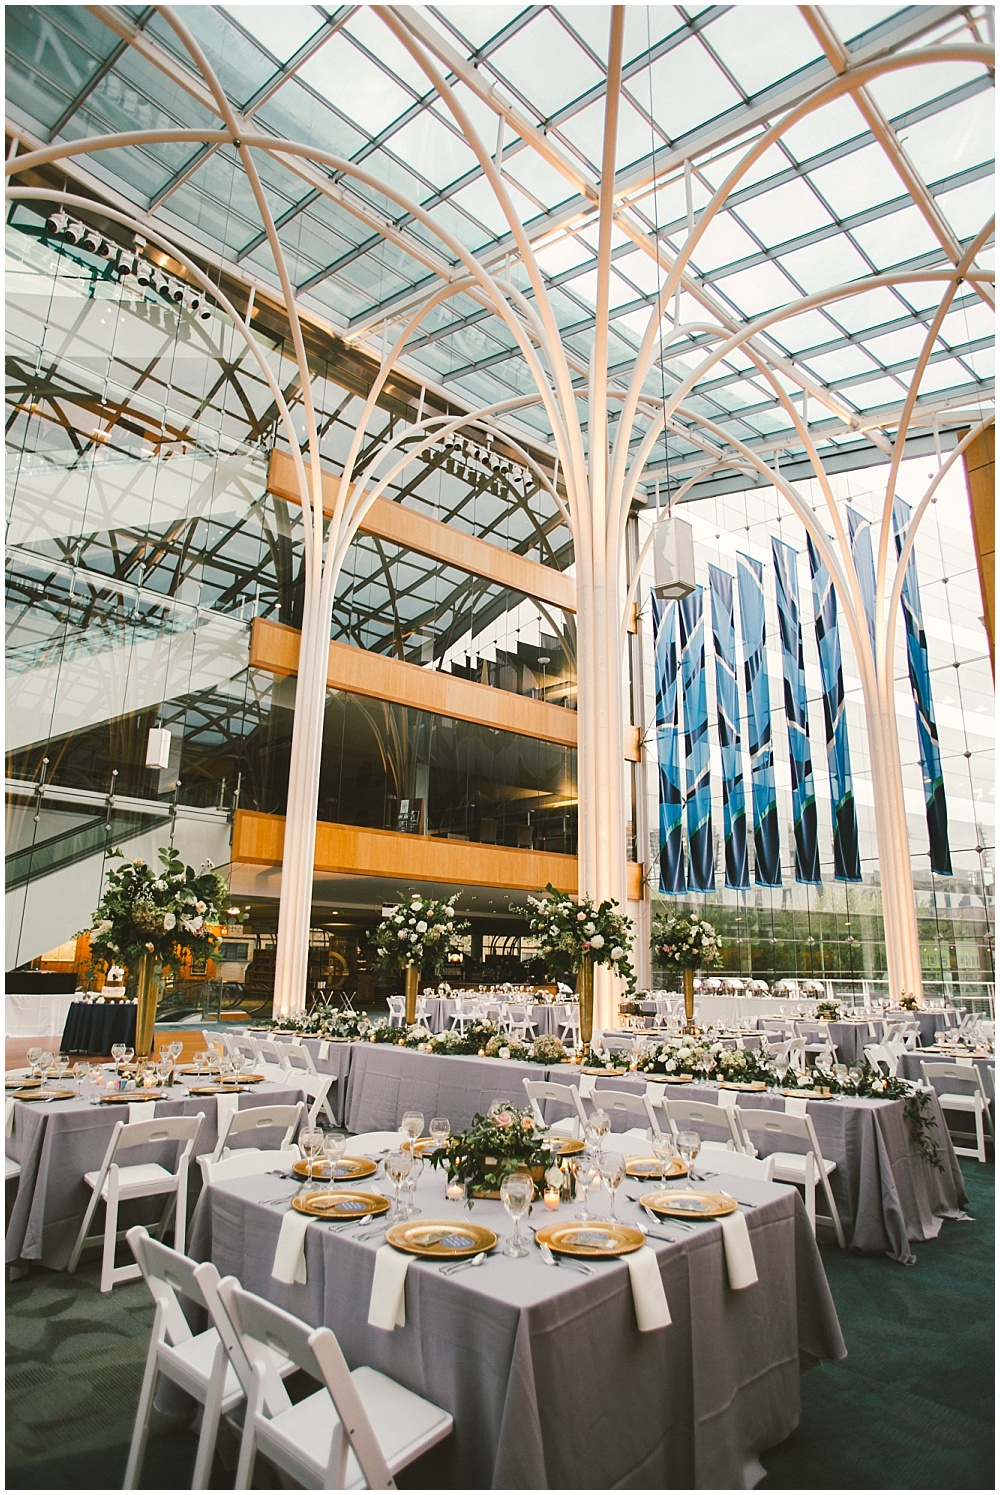 Blush and gold library wedding | Indianapolis Central Library Wedding by Jennifer Van Elk Photography & Jessica Dum Wedding Coordination